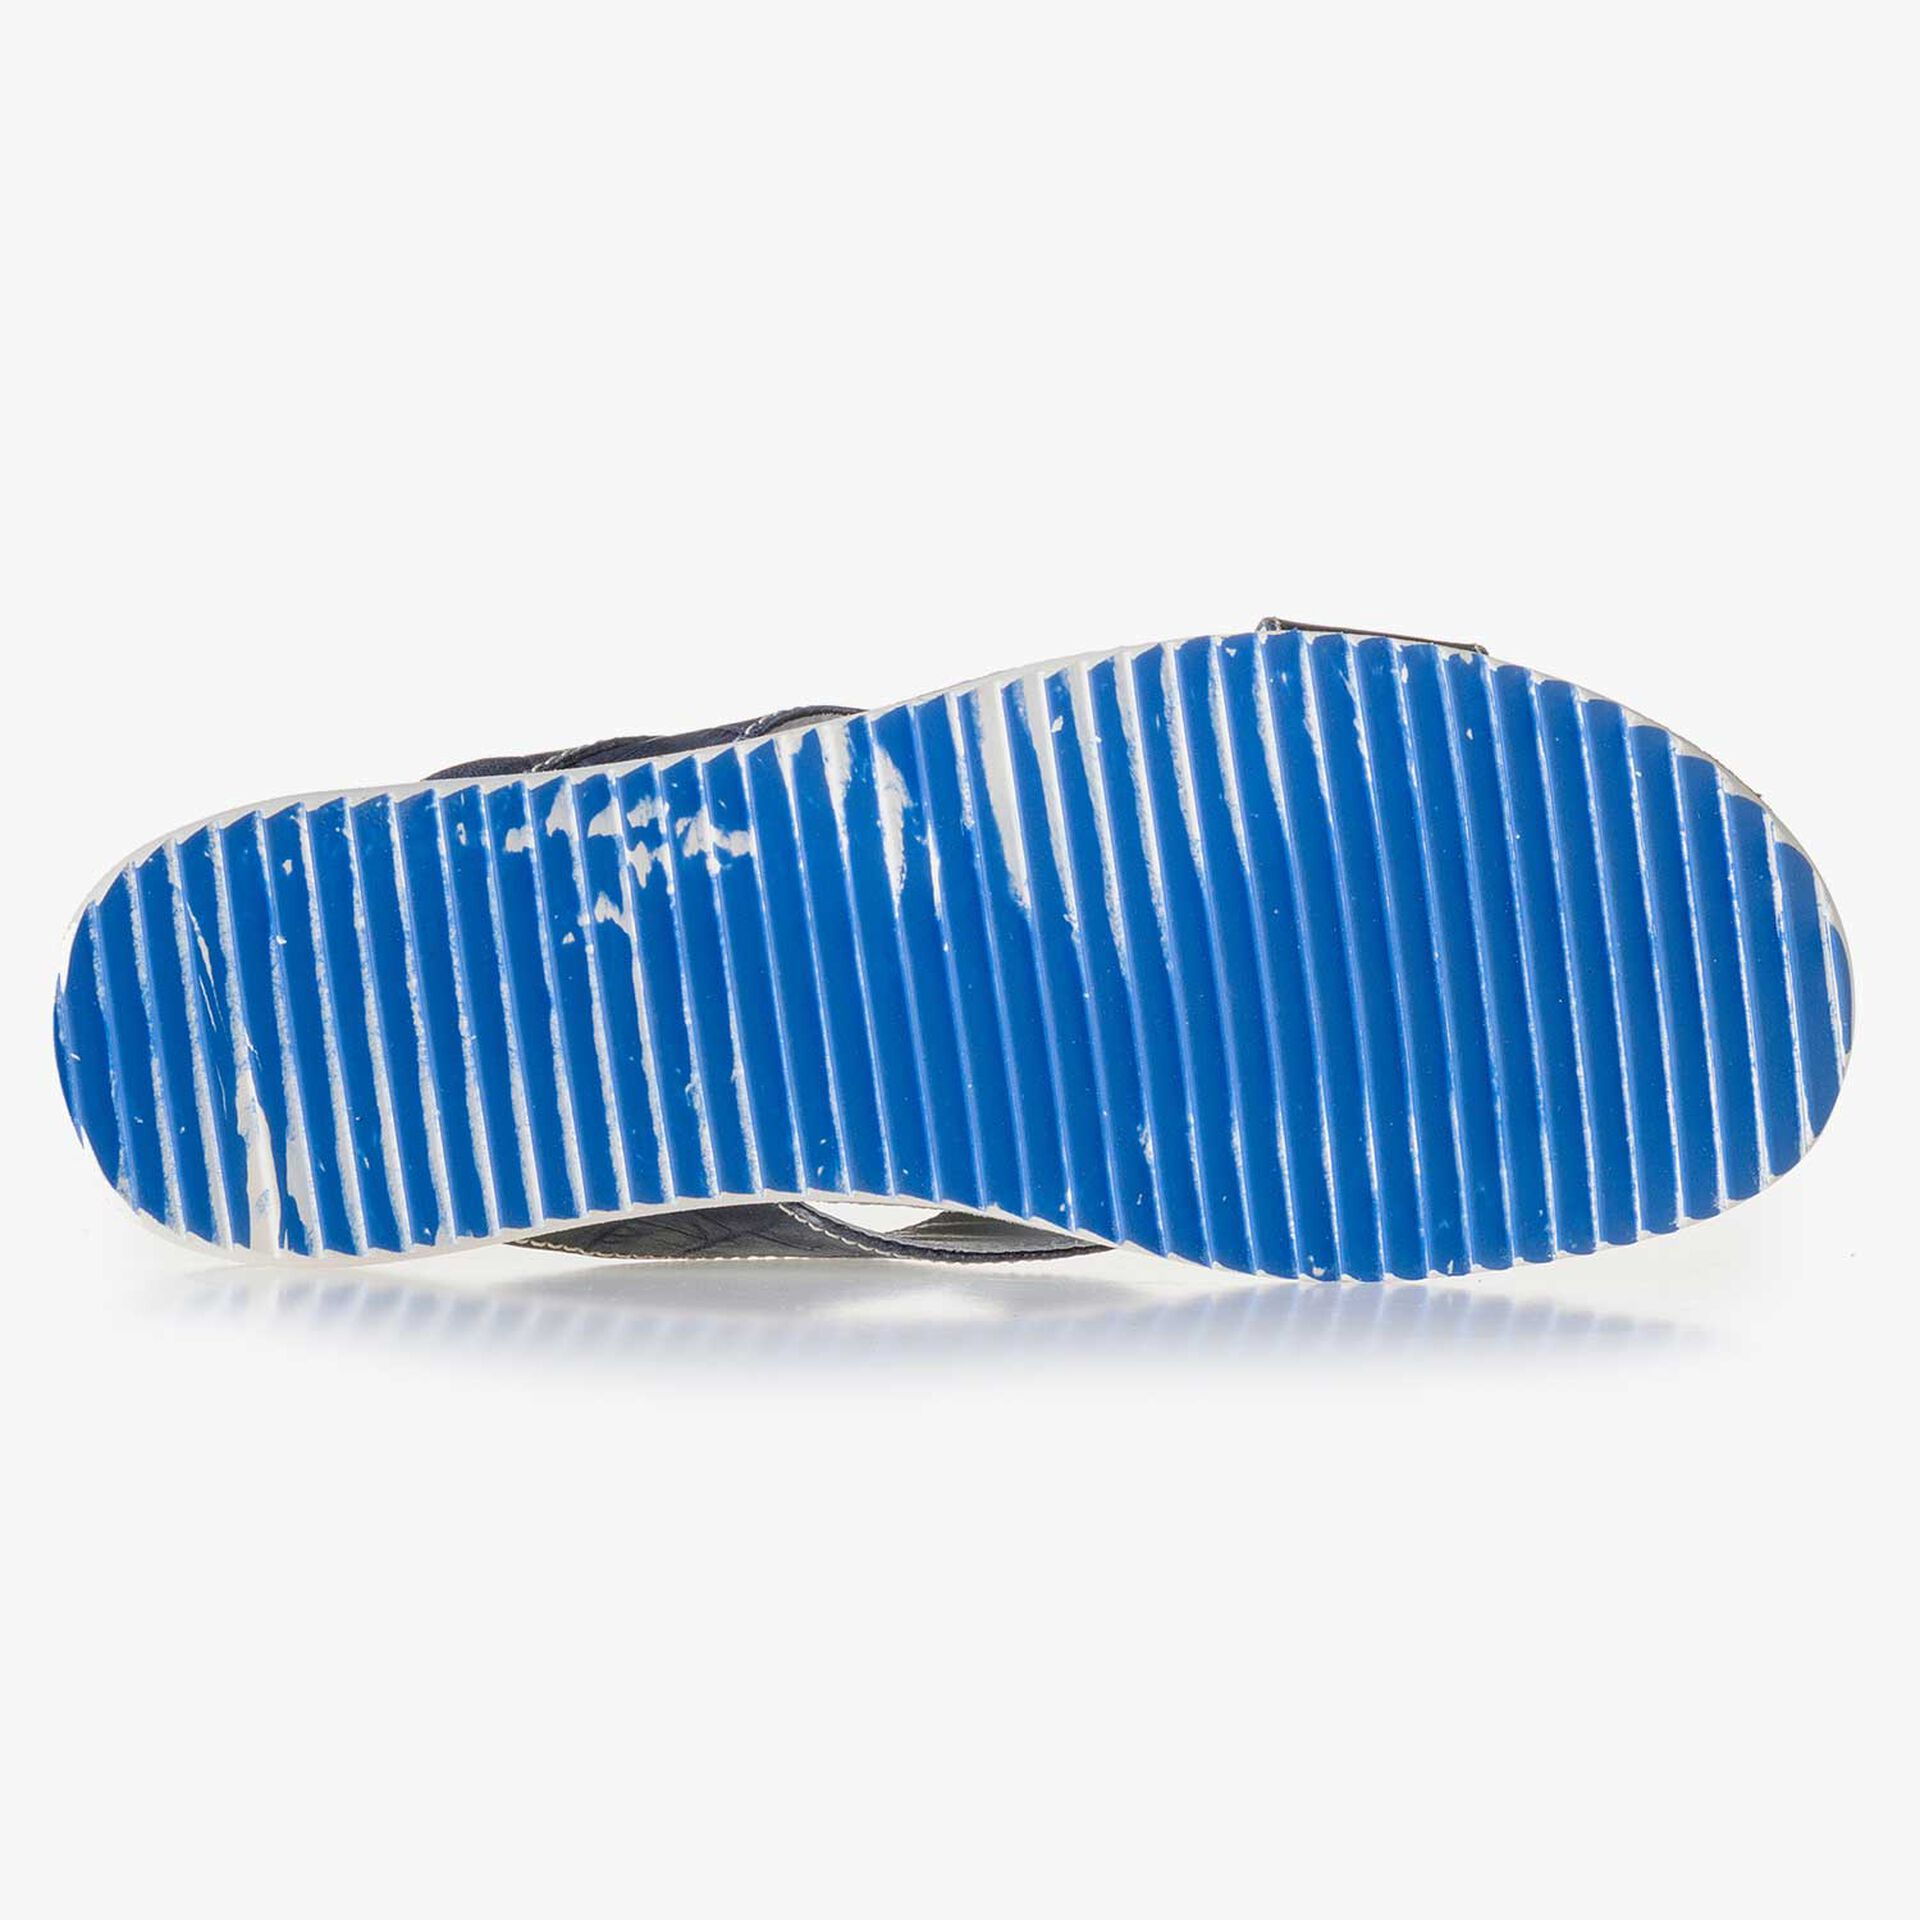 Dark blue leather slipper with cross straps and croco print